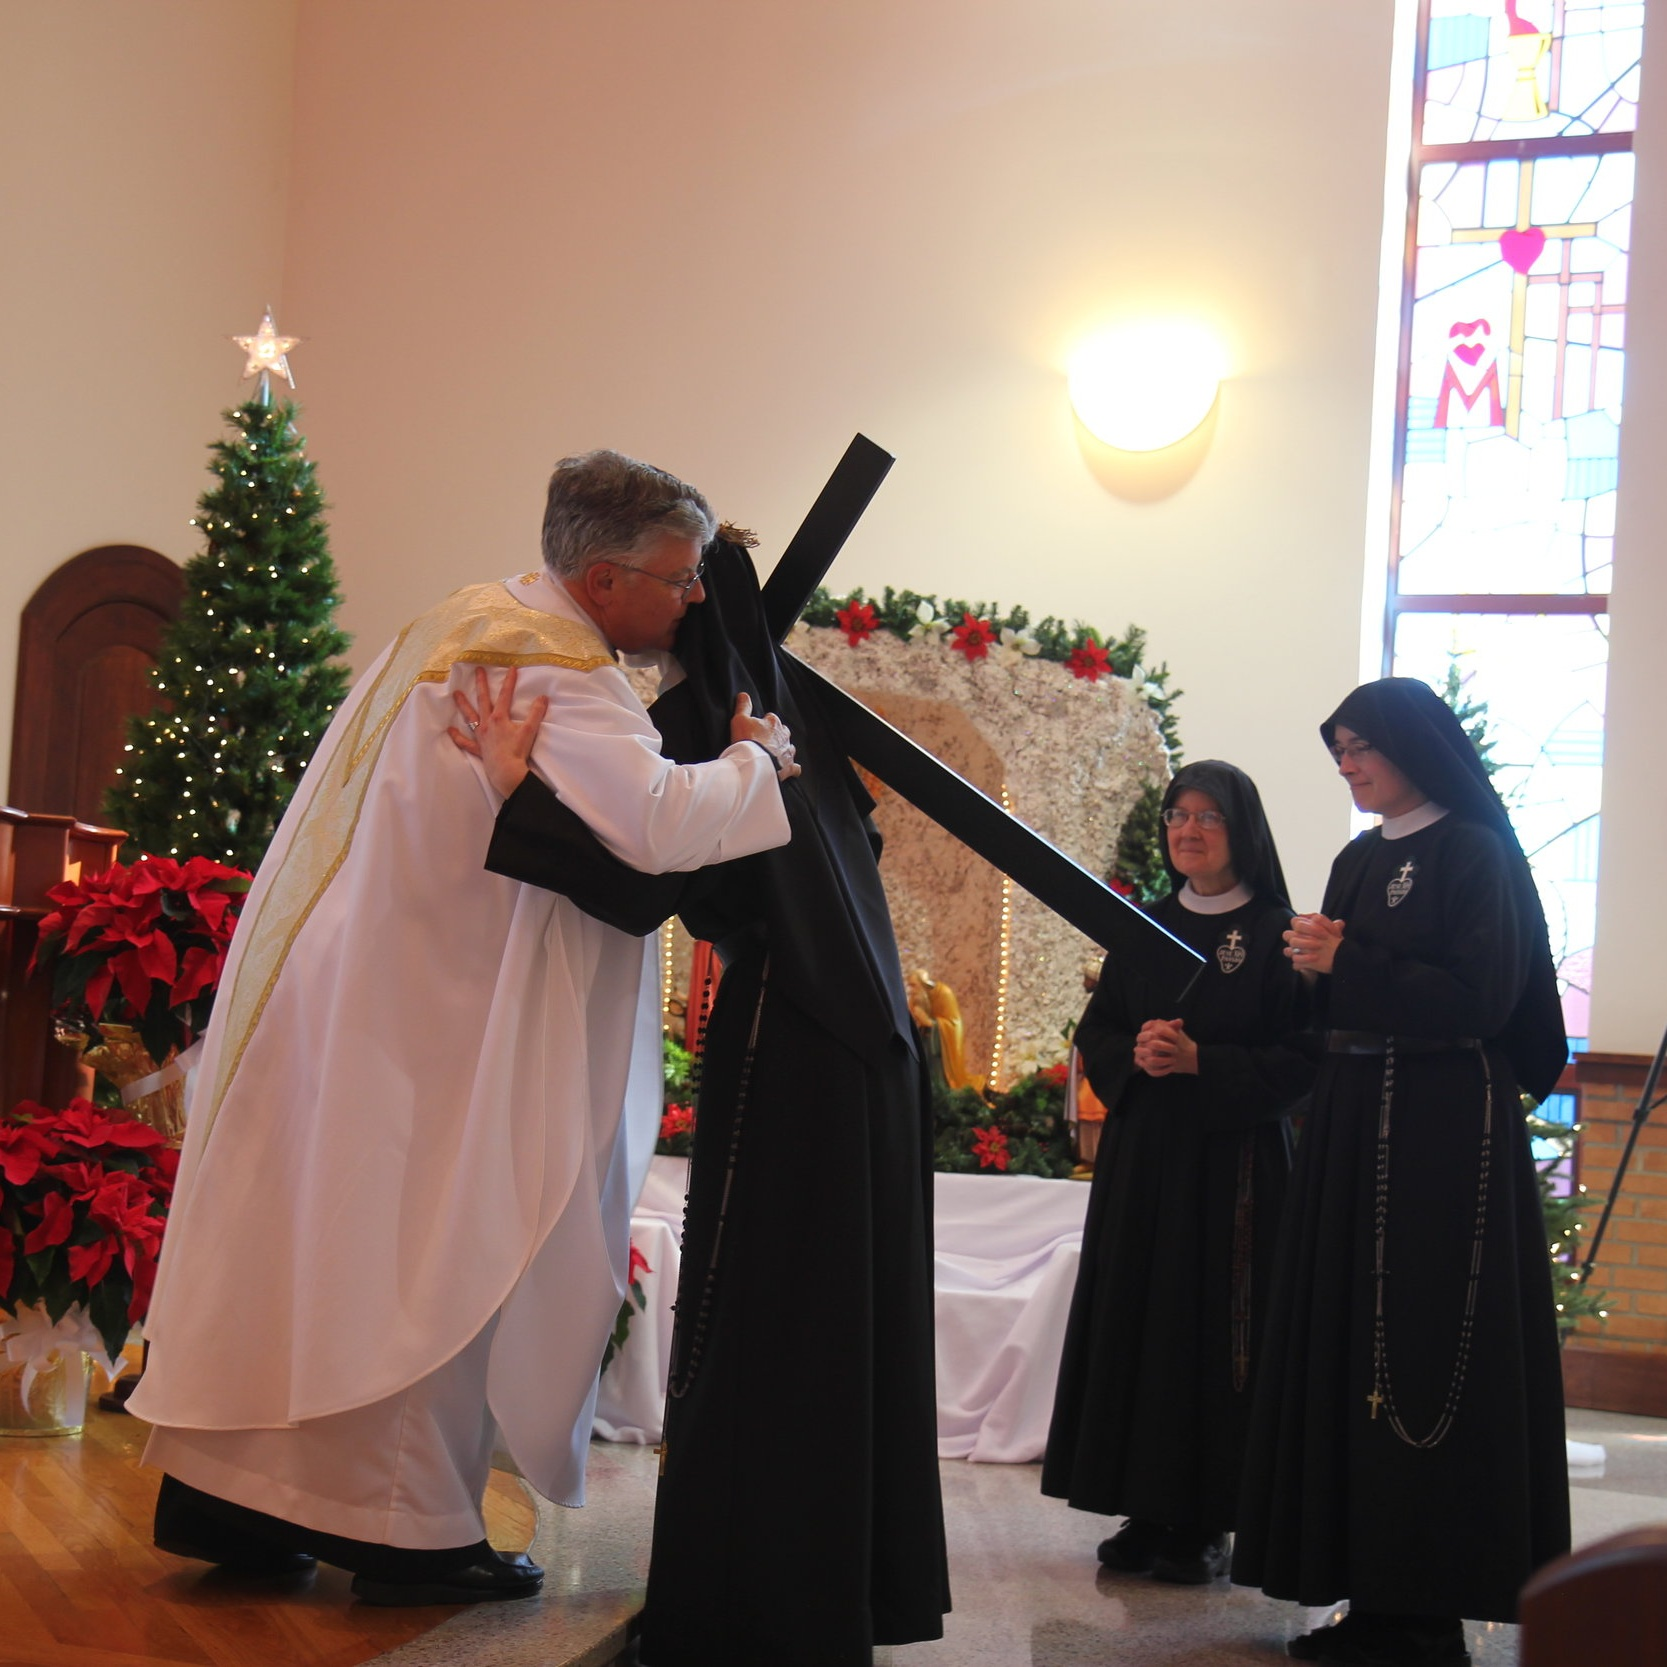 Sister exchanges the Sign of Peace with the Celebrants (con-celebrant Fr. John Shork, CP is pictured), her family, and her Passionist sisters